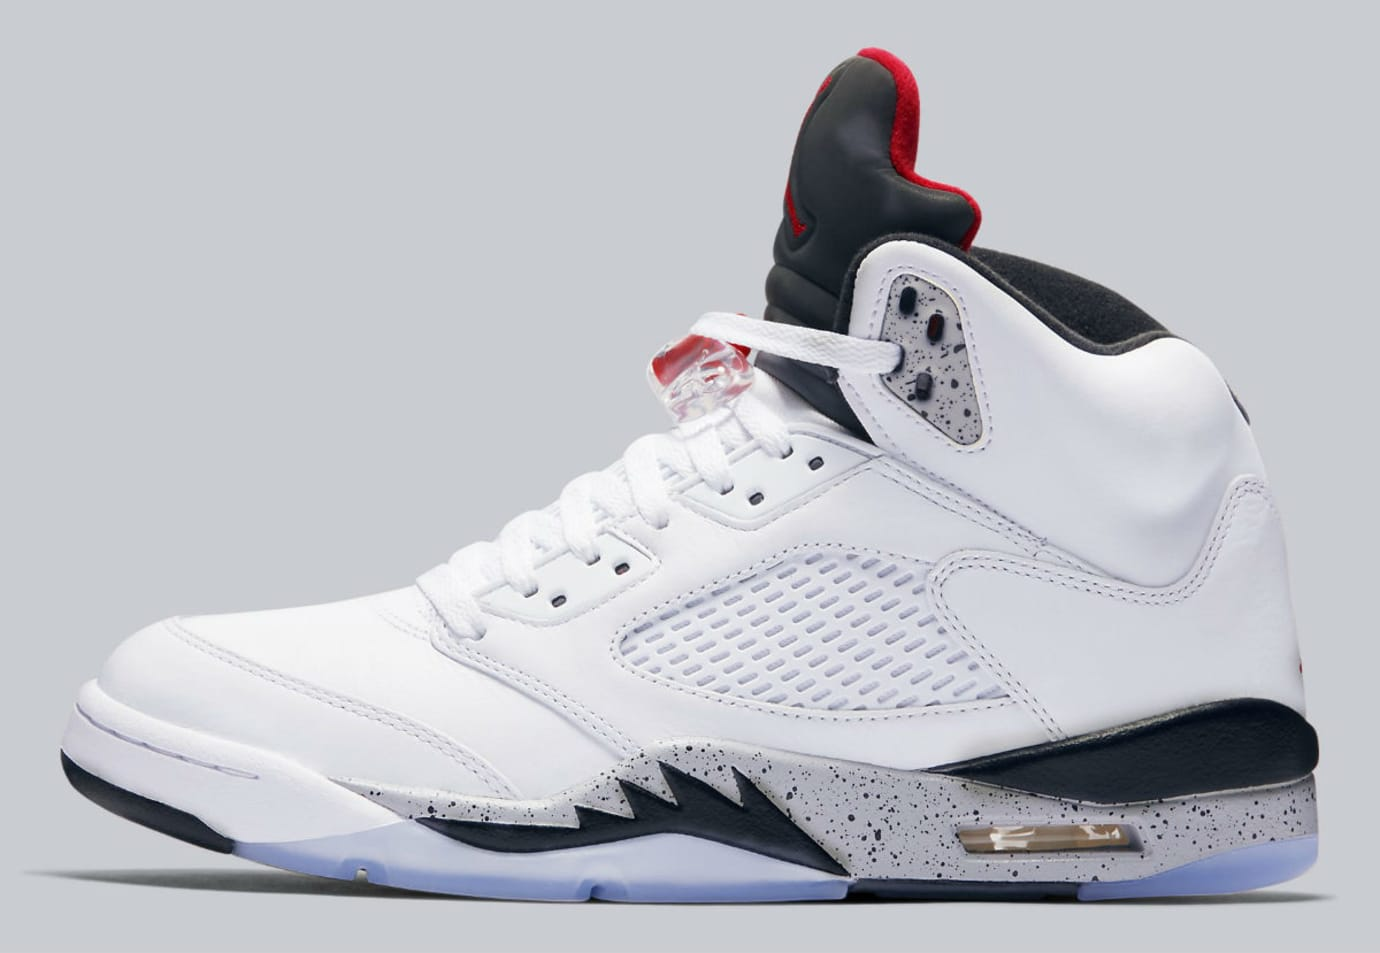 Air Jordan 5 White Cement Release Date Profile 136027-104